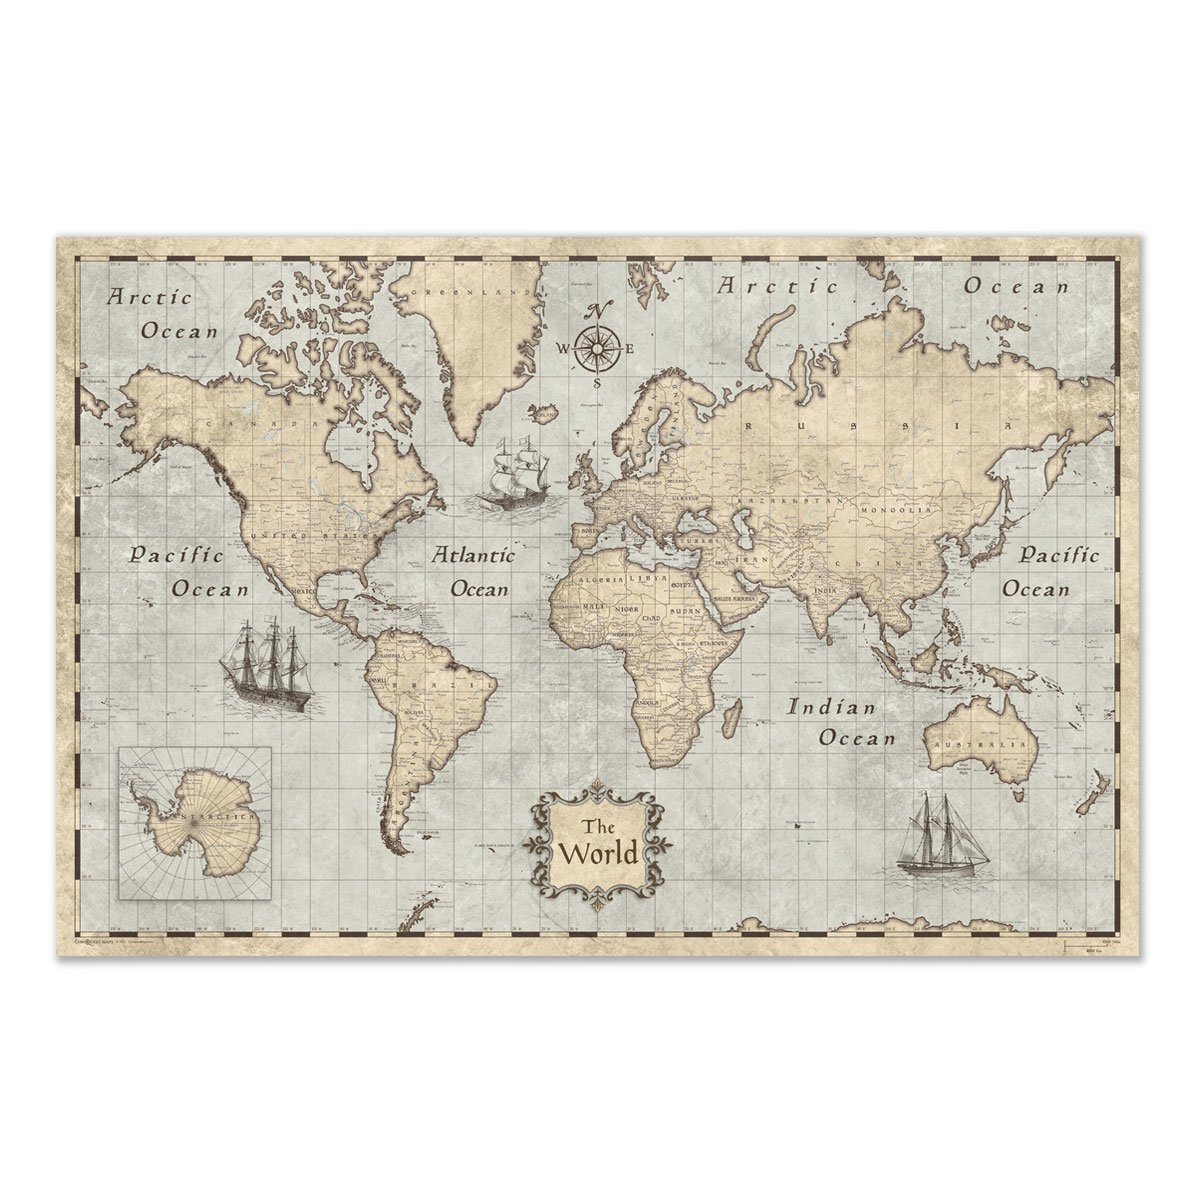 Amazon maps of the world poster by conquest maps beautiful for amazon maps of the world poster by conquest maps beautiful for home or office great gift wedding map anniversary map engagement map malvernweather